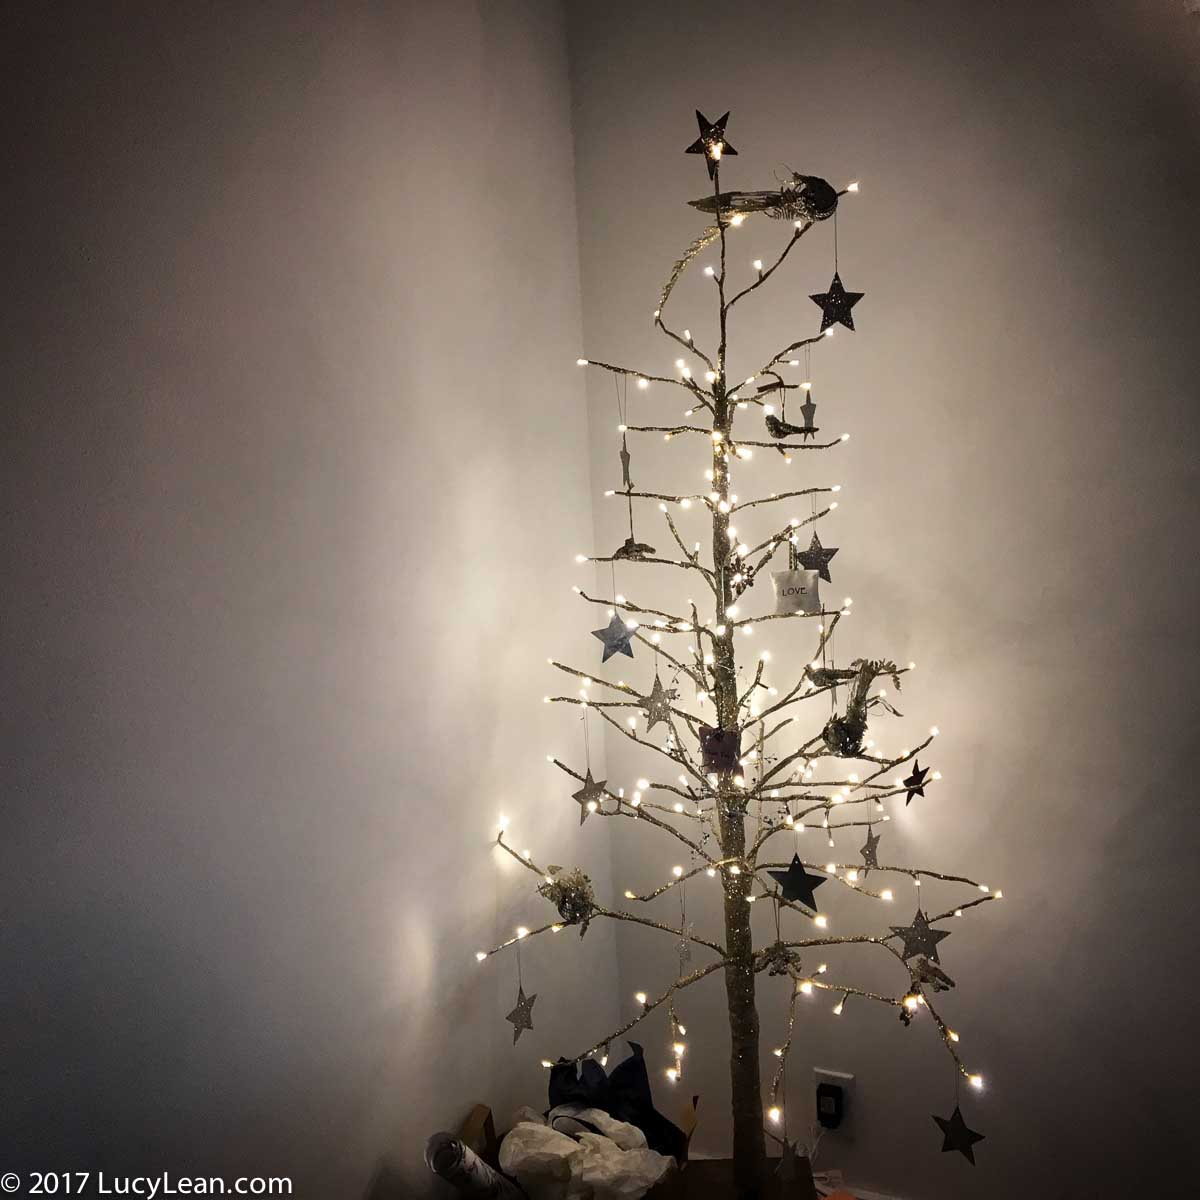 Christmas For All.A Christmas Tree All Year A Tree For All Seasons And Every